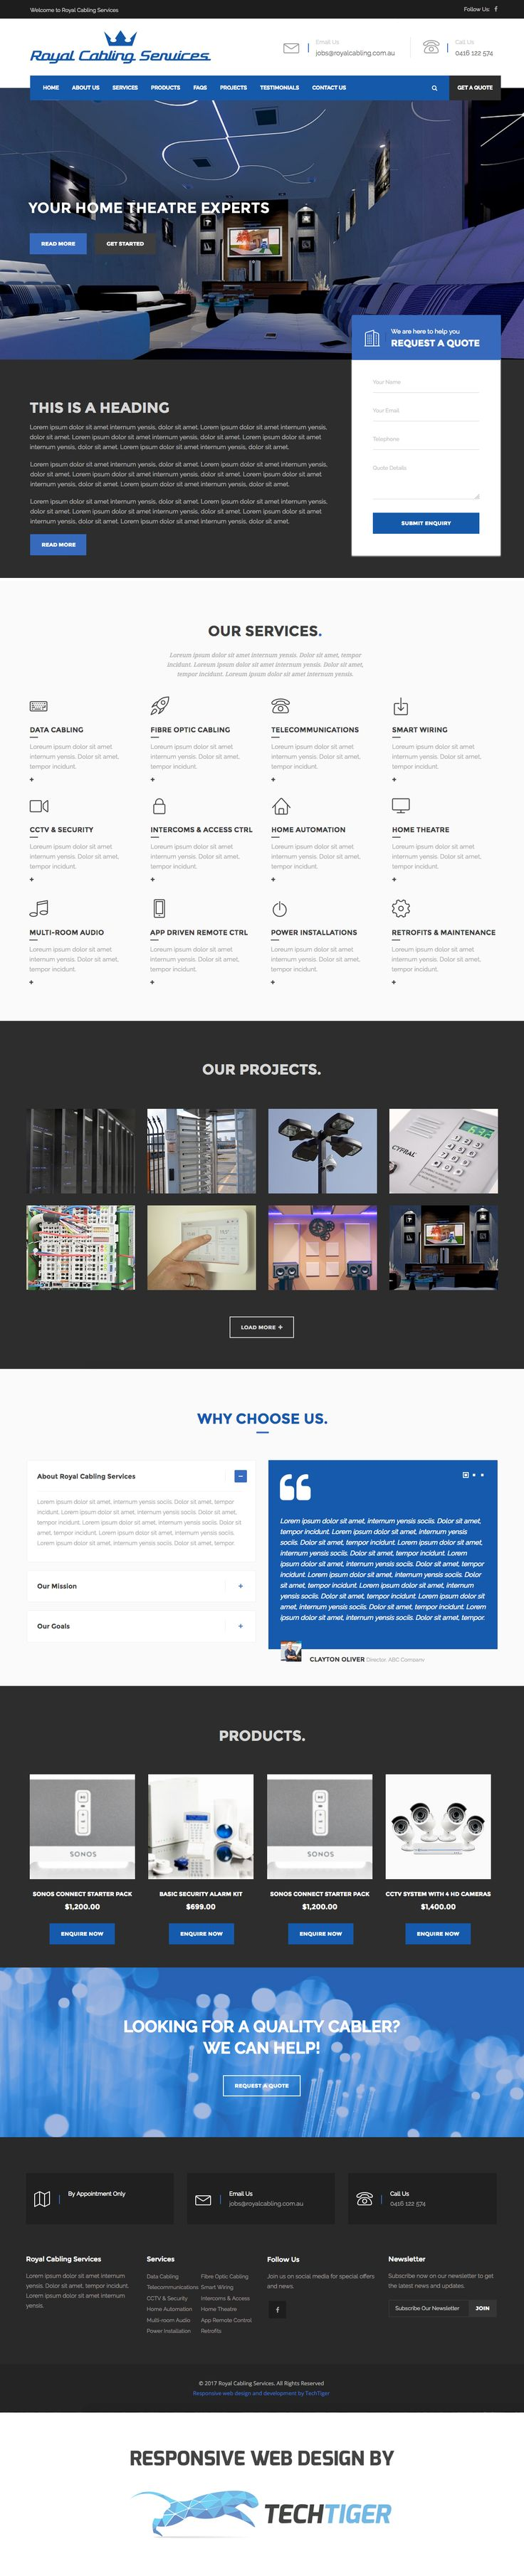 Royal Cabling Services. Responsive website design by TechTiger.